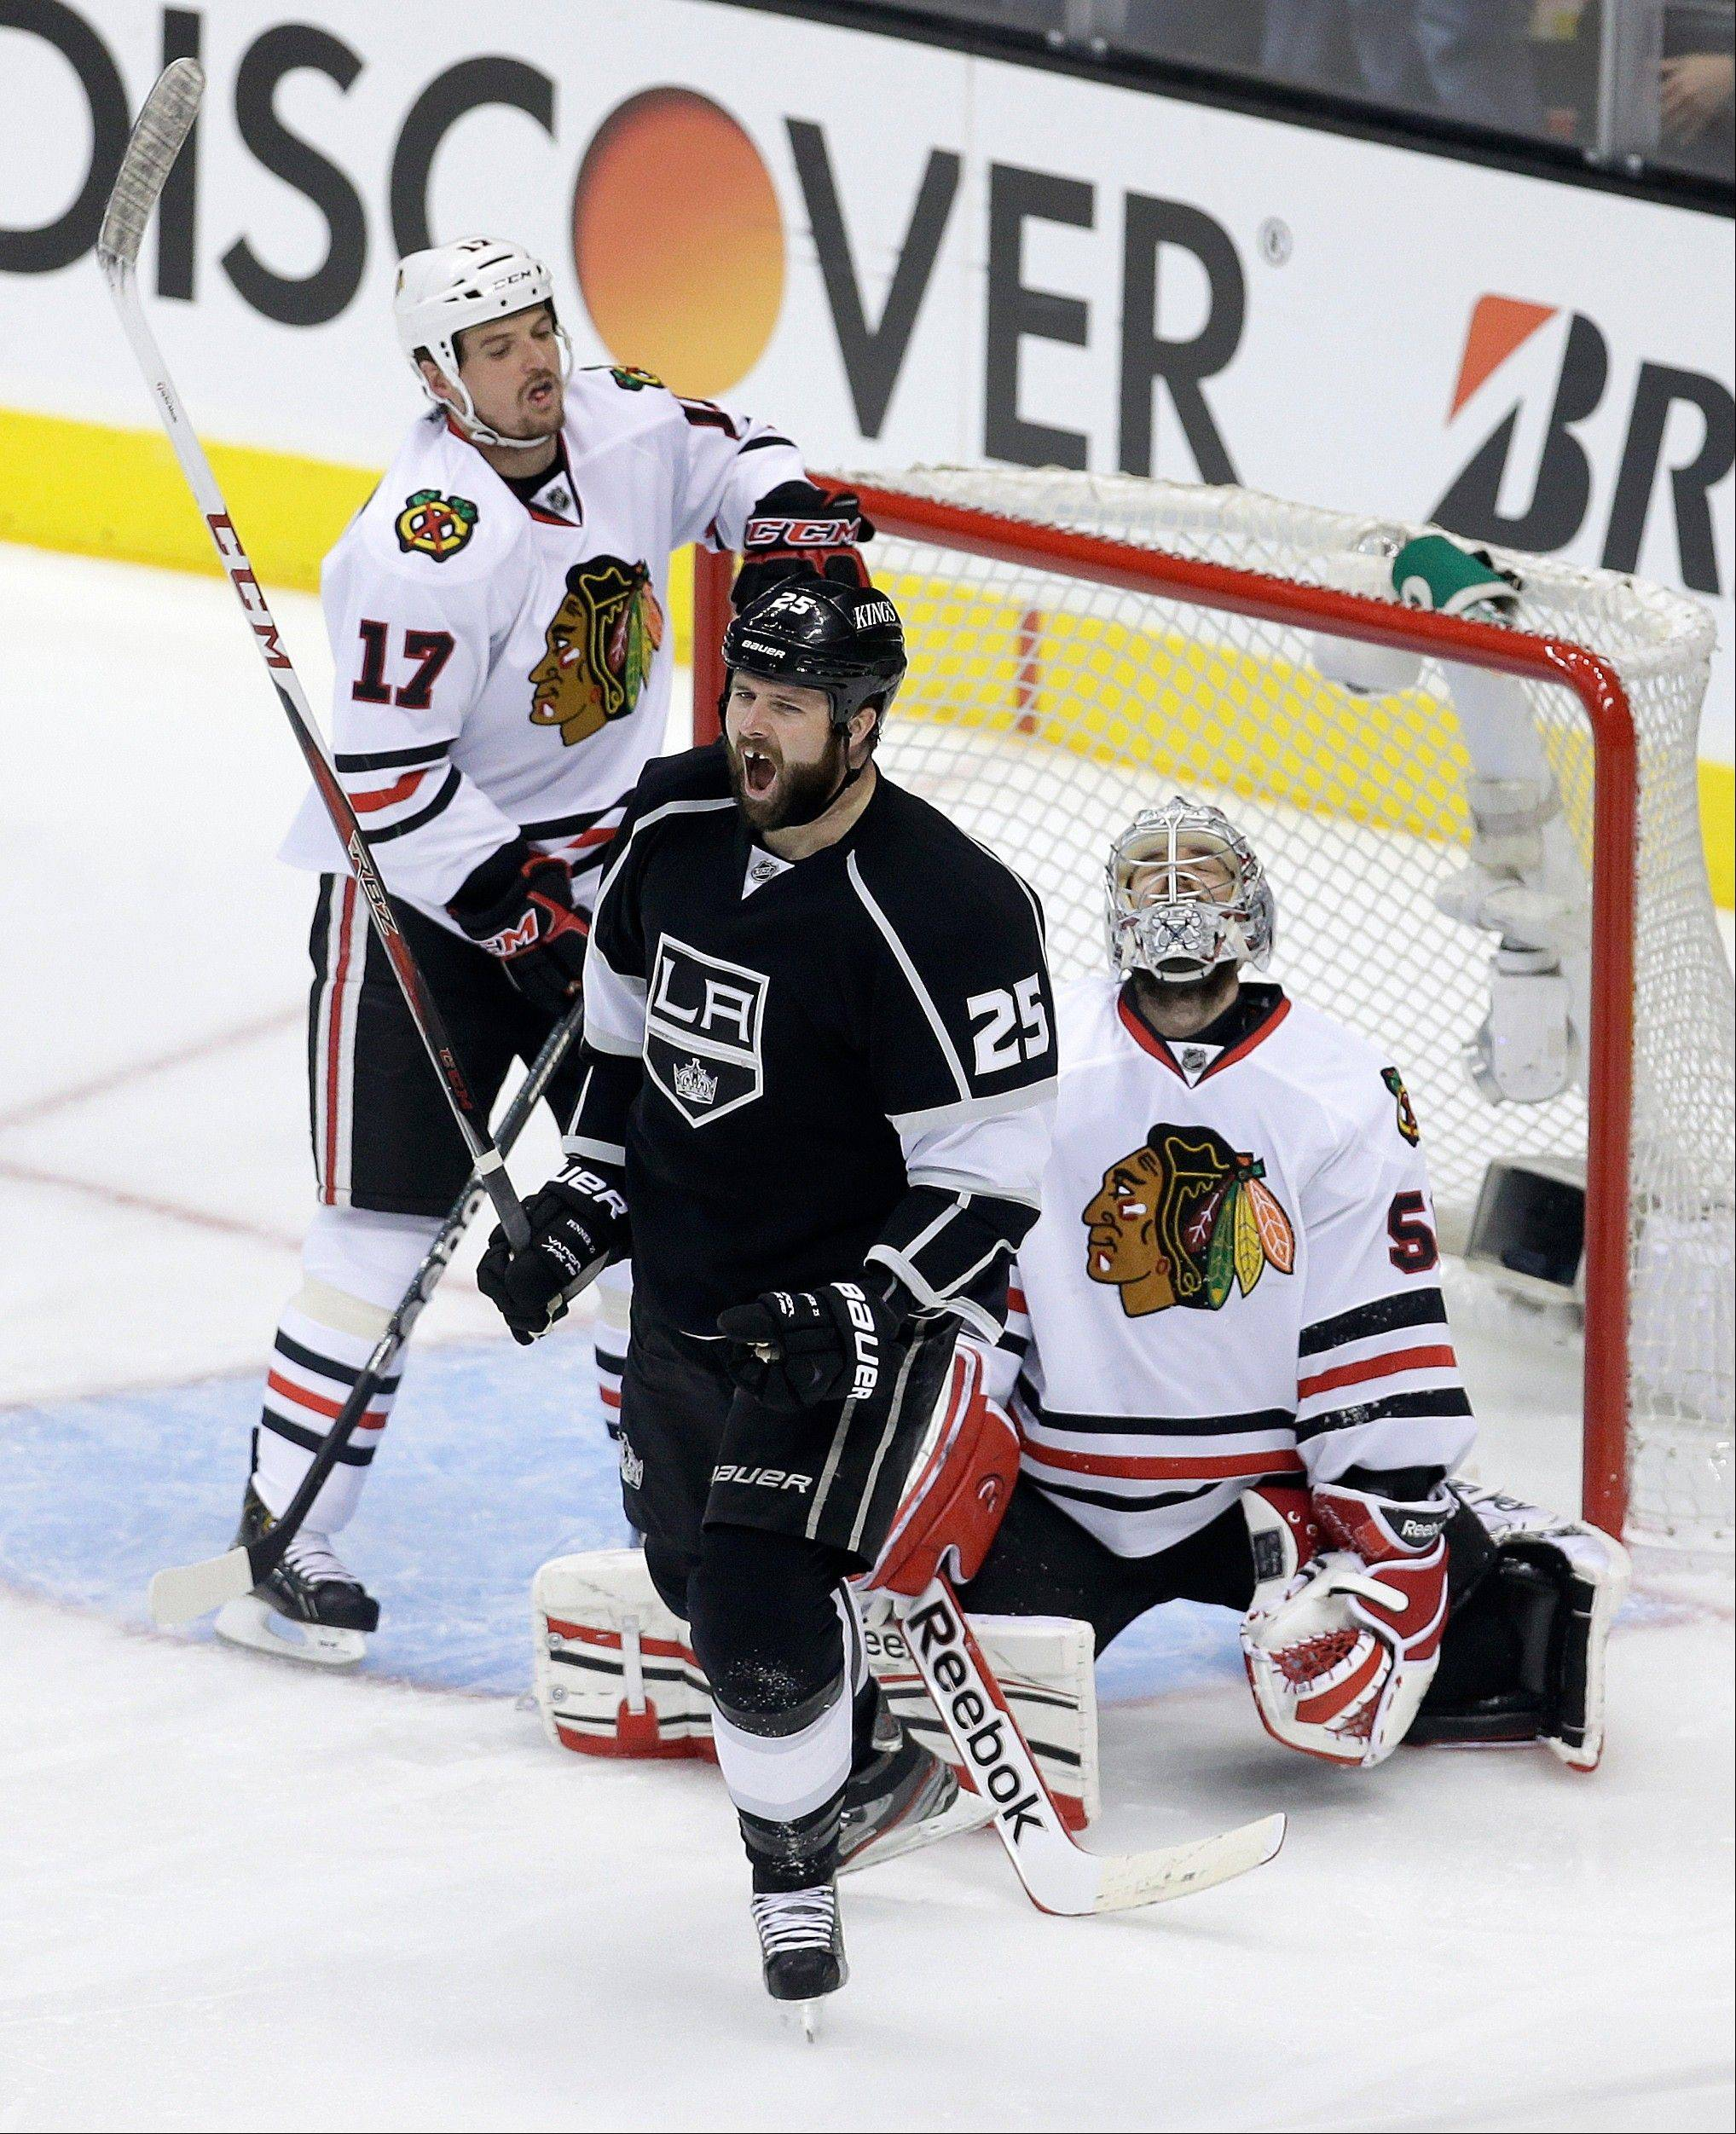 Los Angeles Kings left wing Dustin Penner, middle, celebrates his goal, in front ofChicago Blackhawks goalie Corey Crawford, right, and Sheldon Brookbank during the second period of Game 4 of the Western Conference finals in Los Angeles on Thursday.